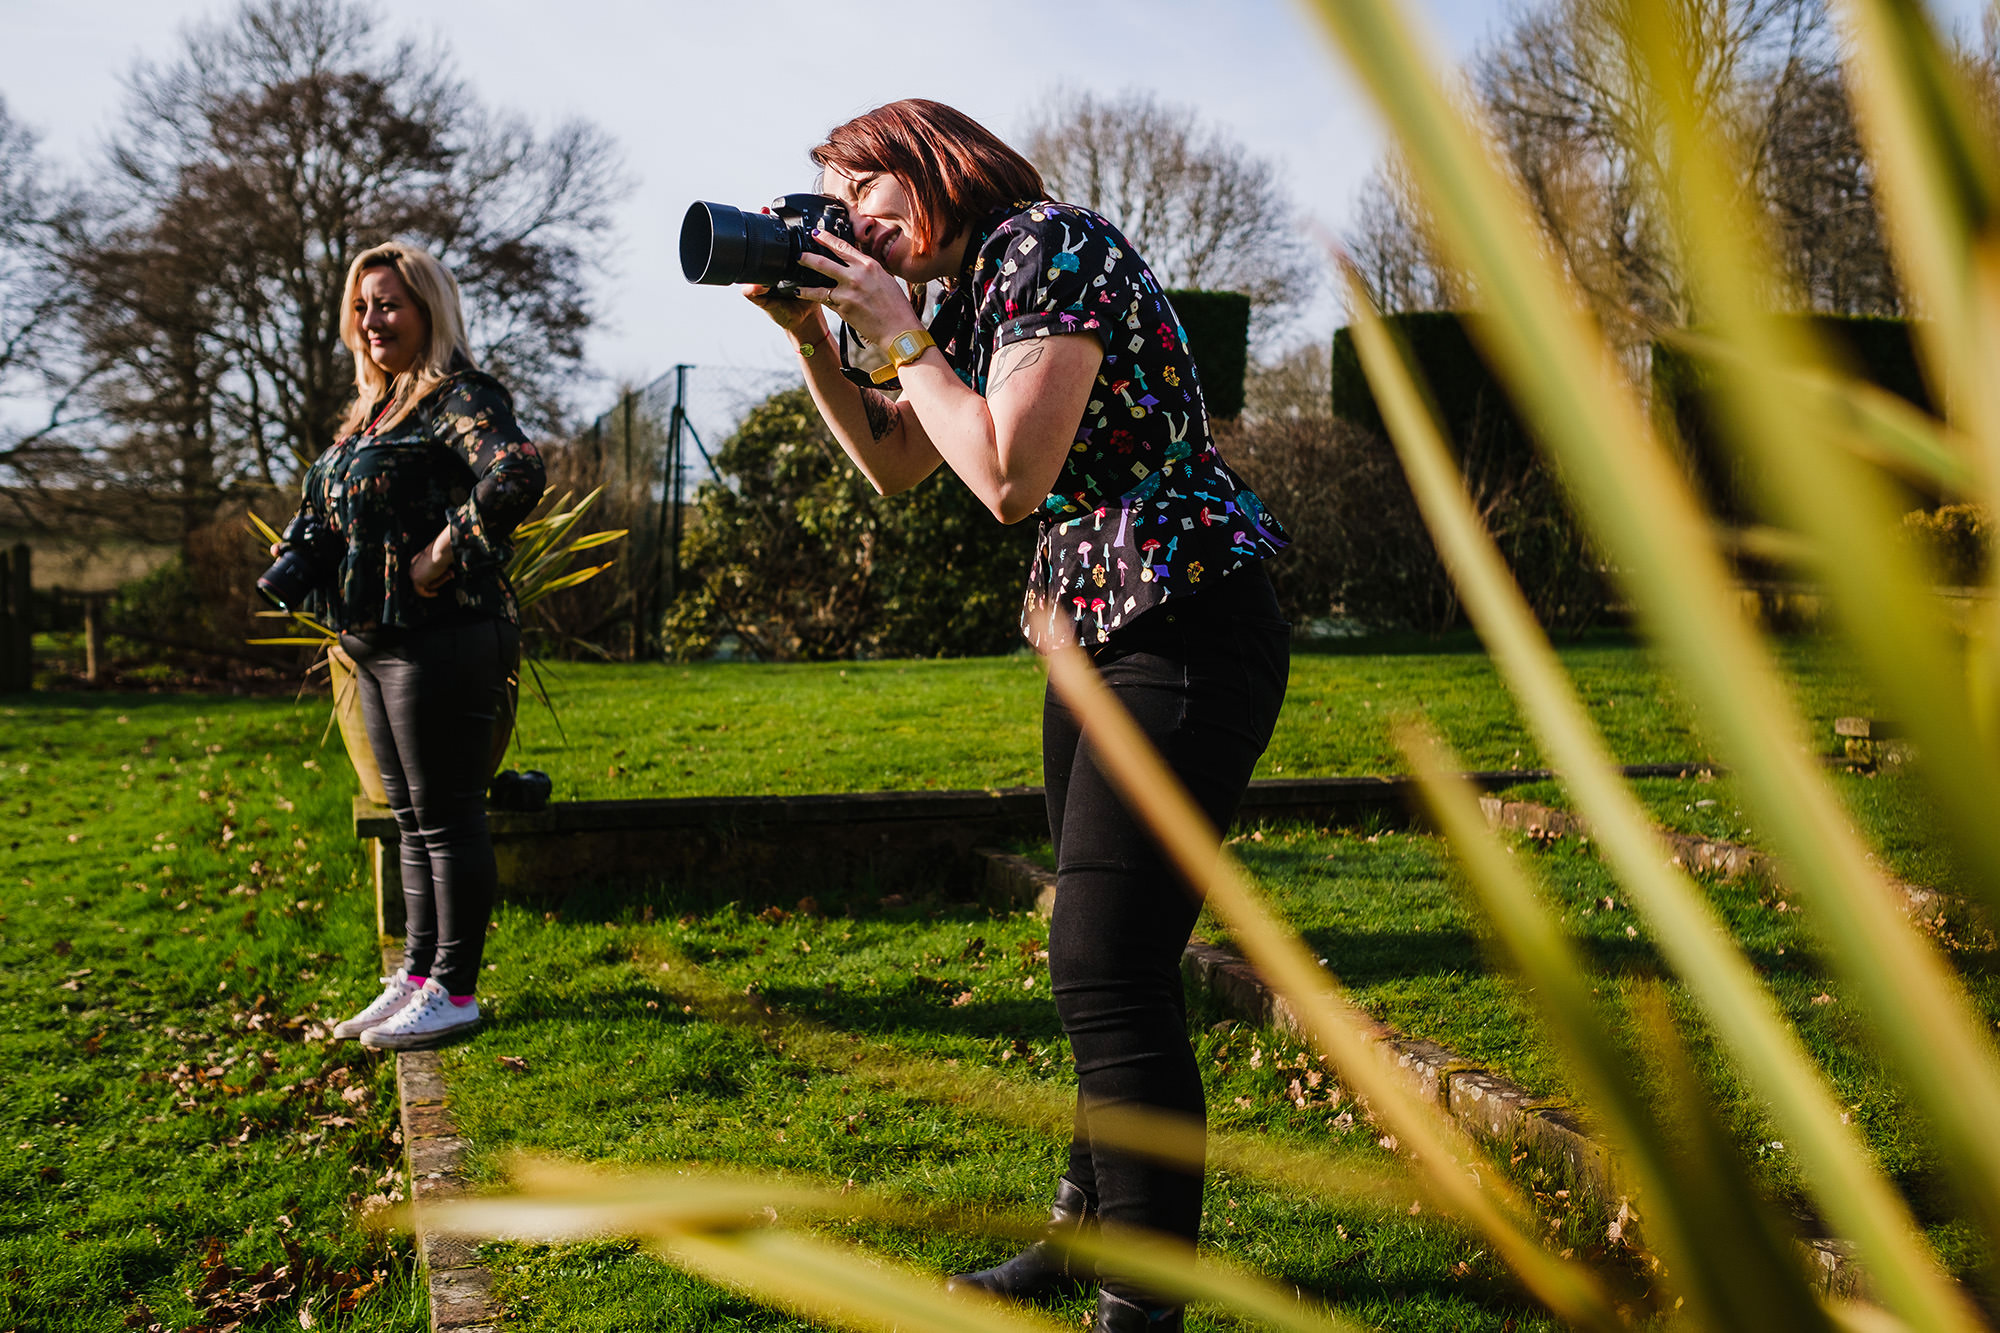 sunny day photographers shooting